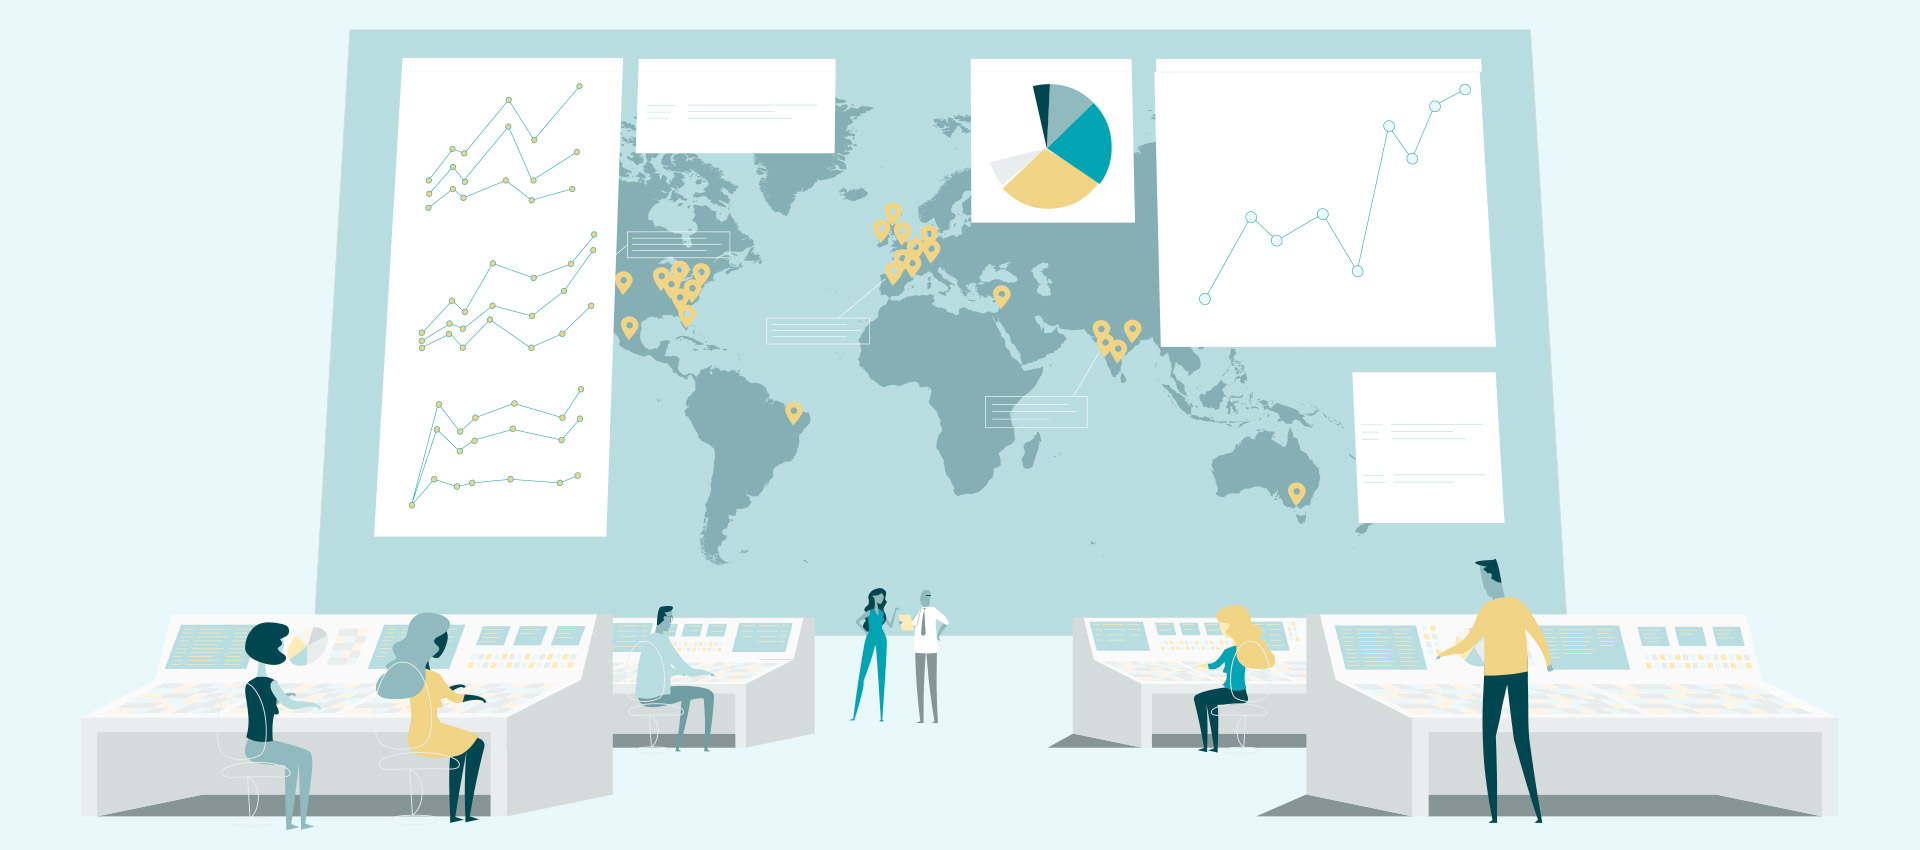 People at work in front of a giant map with charts representing global ecommerce